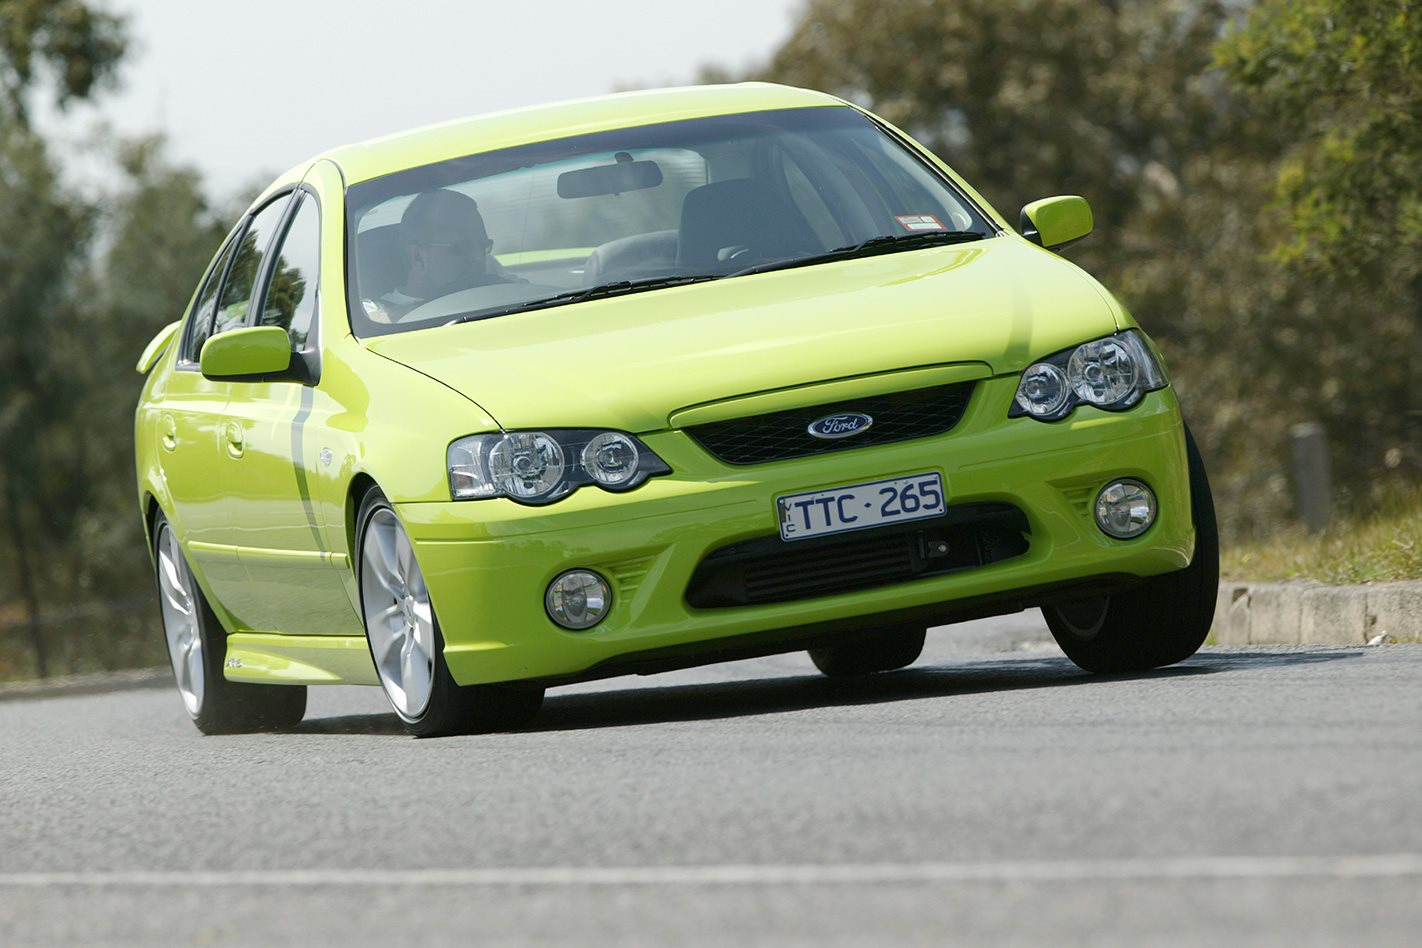 Ford Falcon BF XR6 Turbo auto review: Classic MOTOR